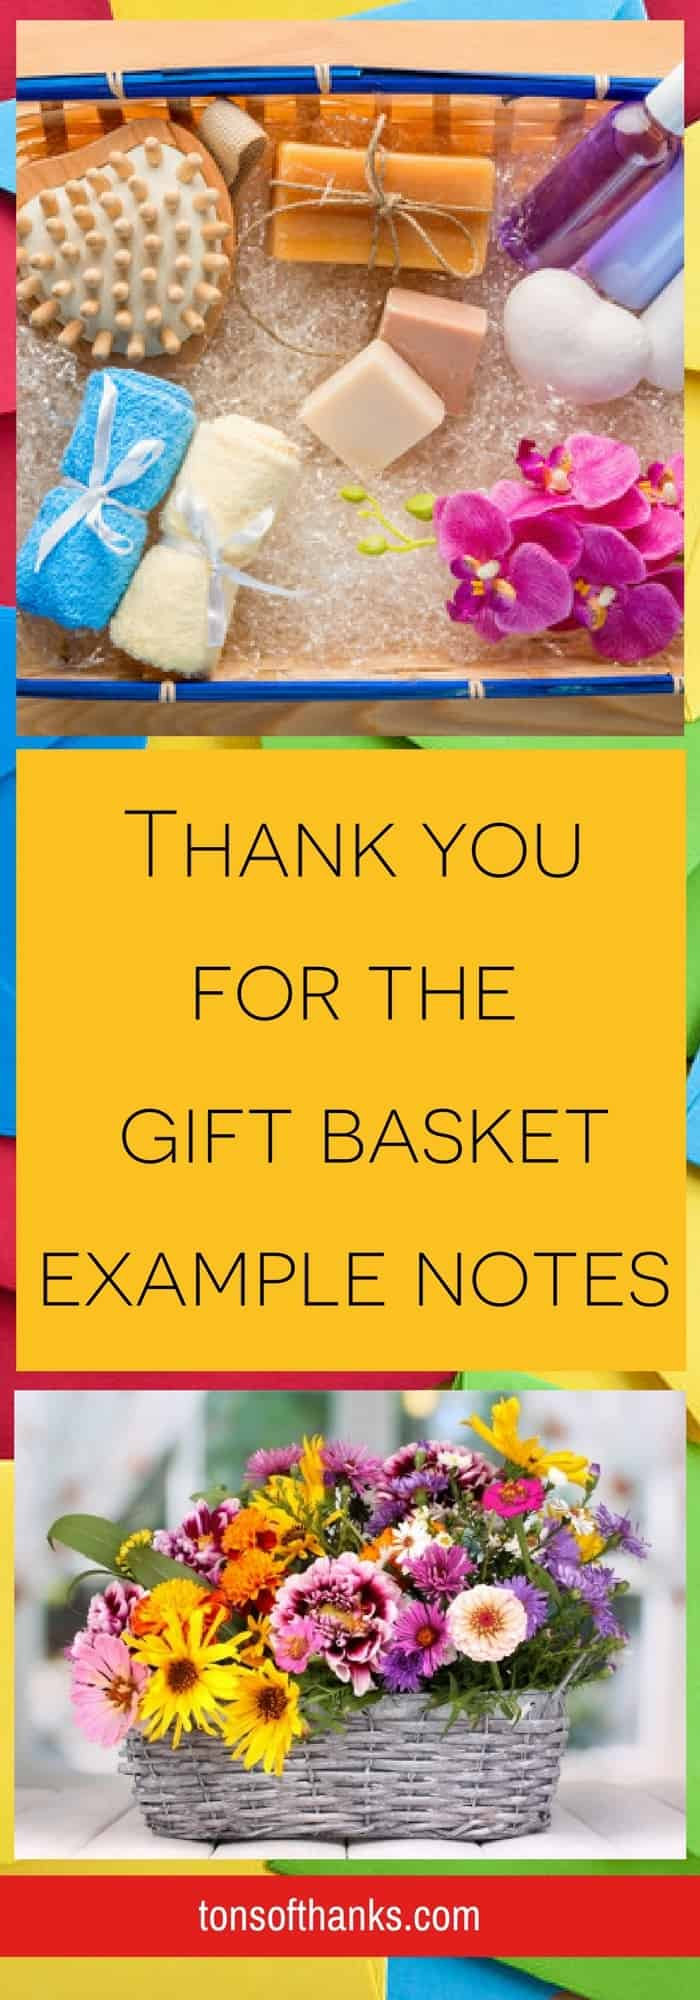 Thank you for the gift basket example notes - Pinterest